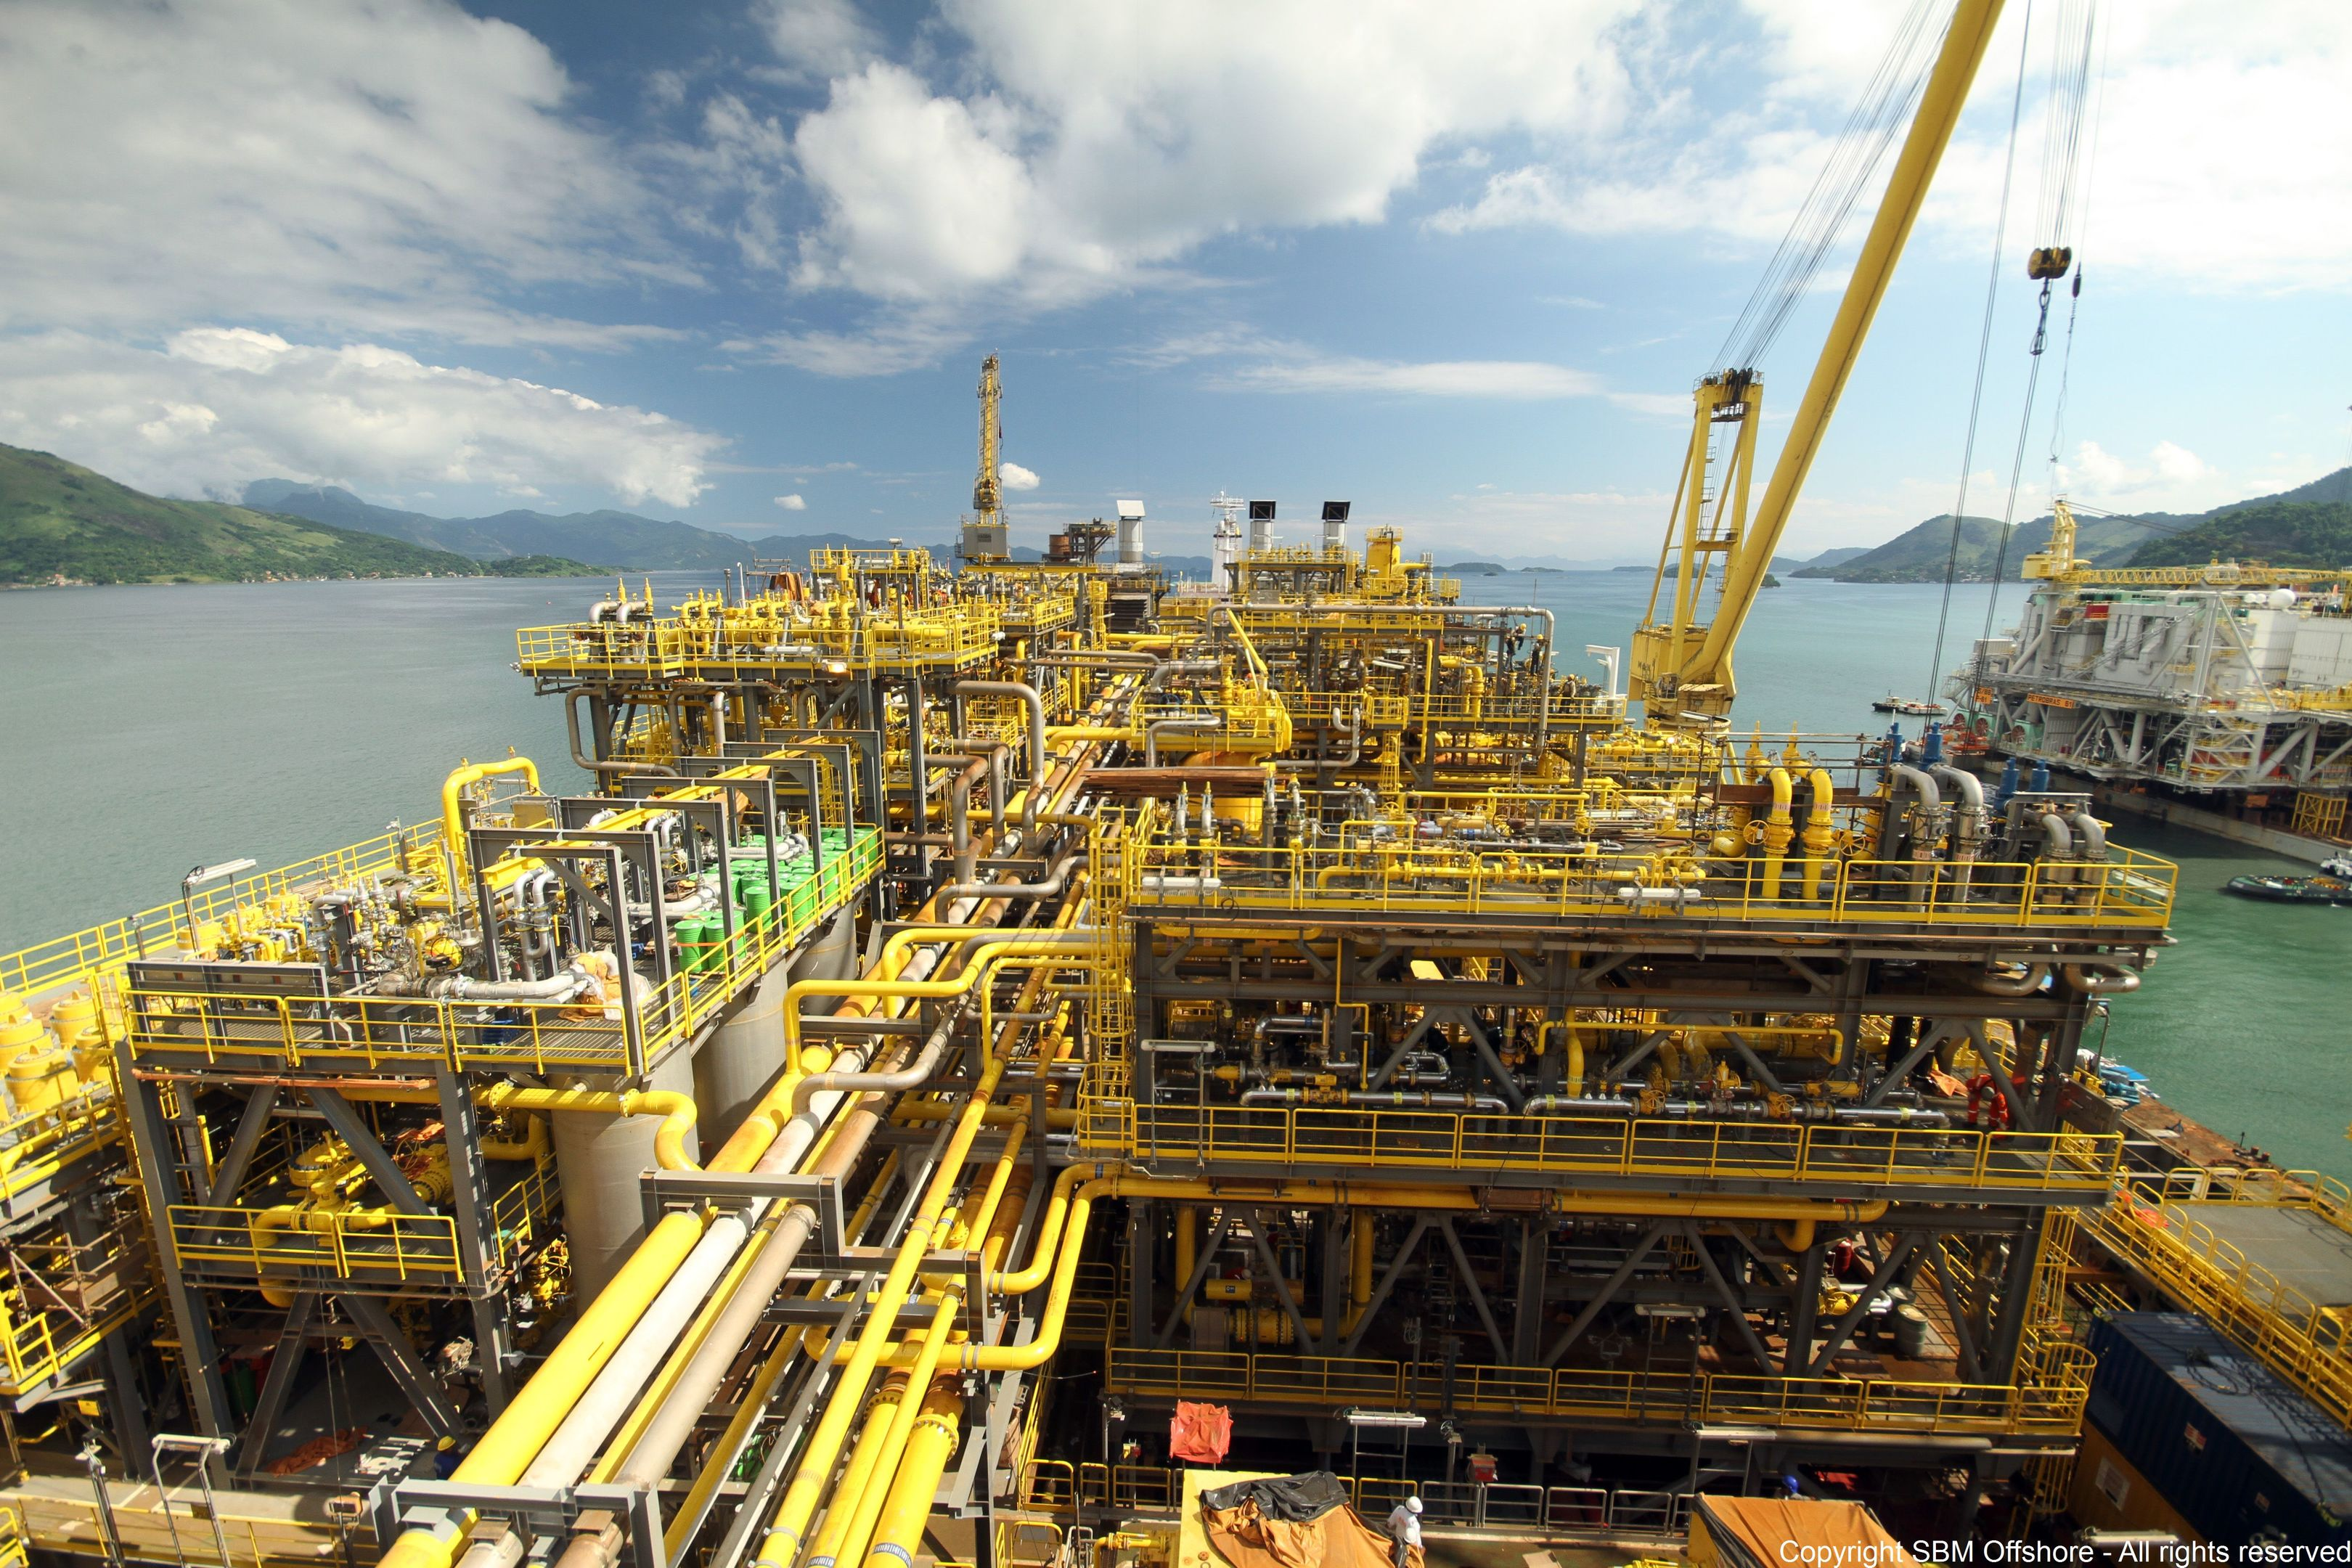 ExxonMobil's Liza field forms part of the 6billion barrel Stabroek block. Pic: SBM Offshore FPSO